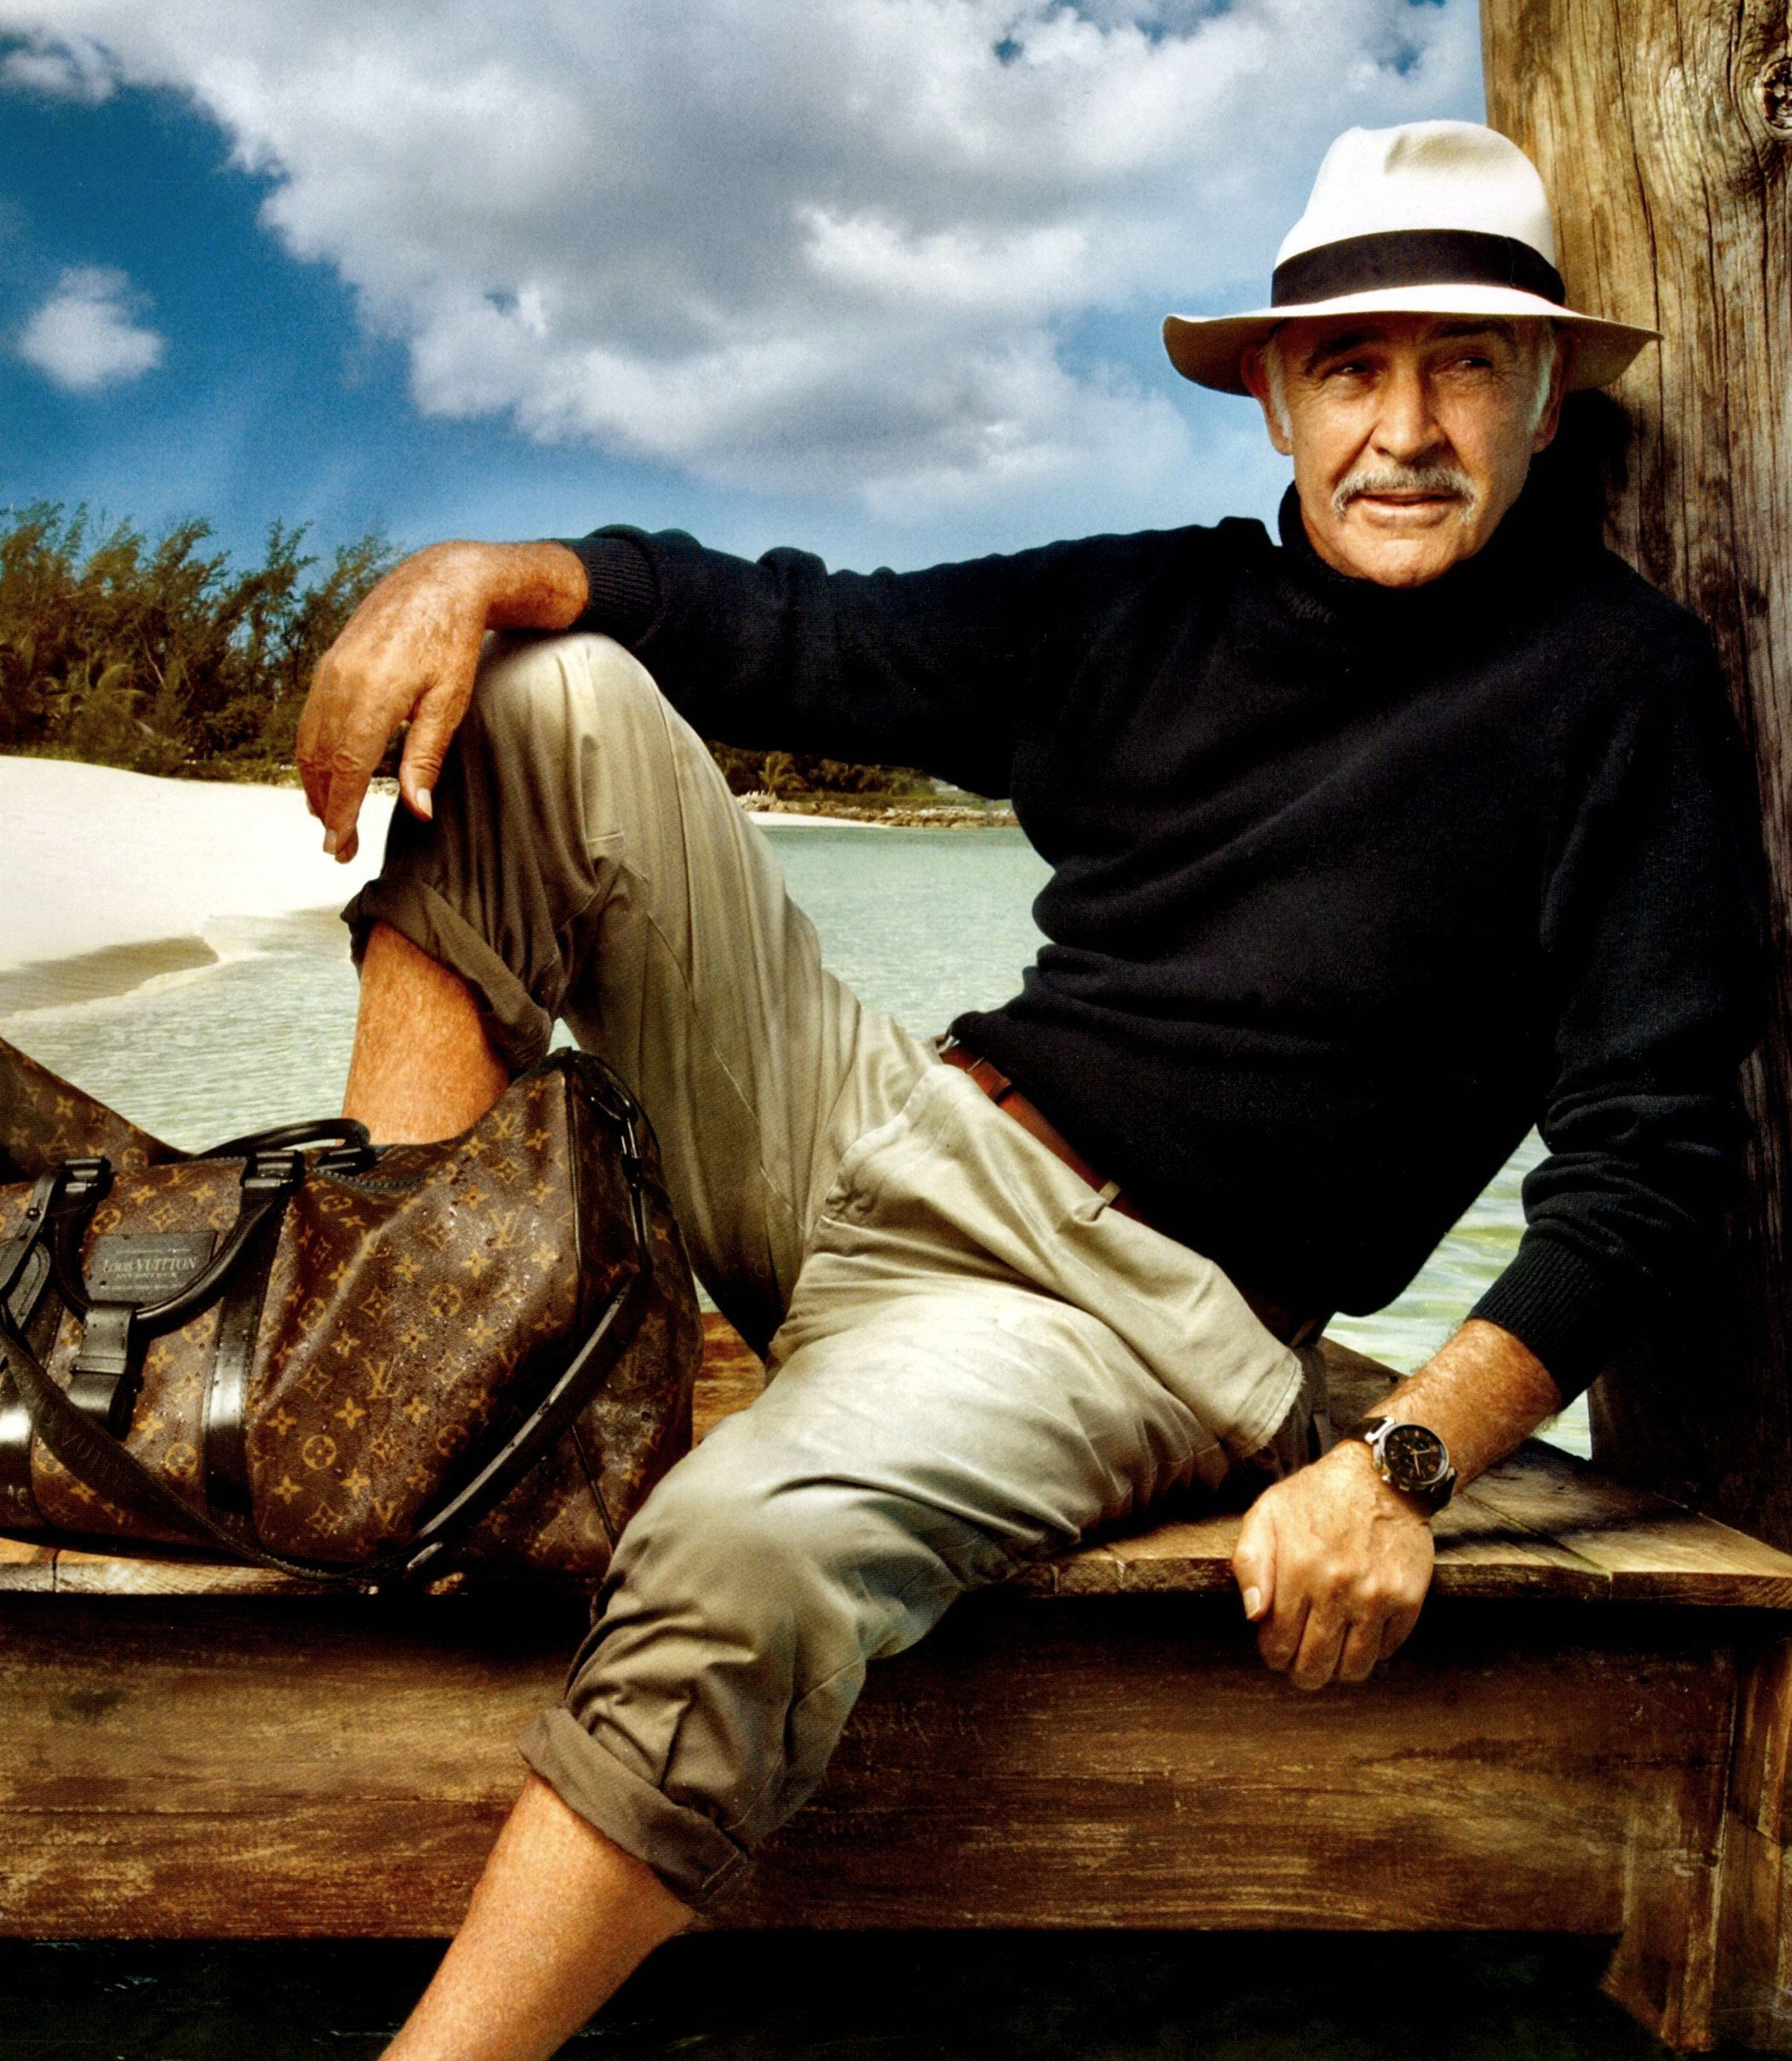 Sean Connery photo 29 of 67 pics, wallpapers